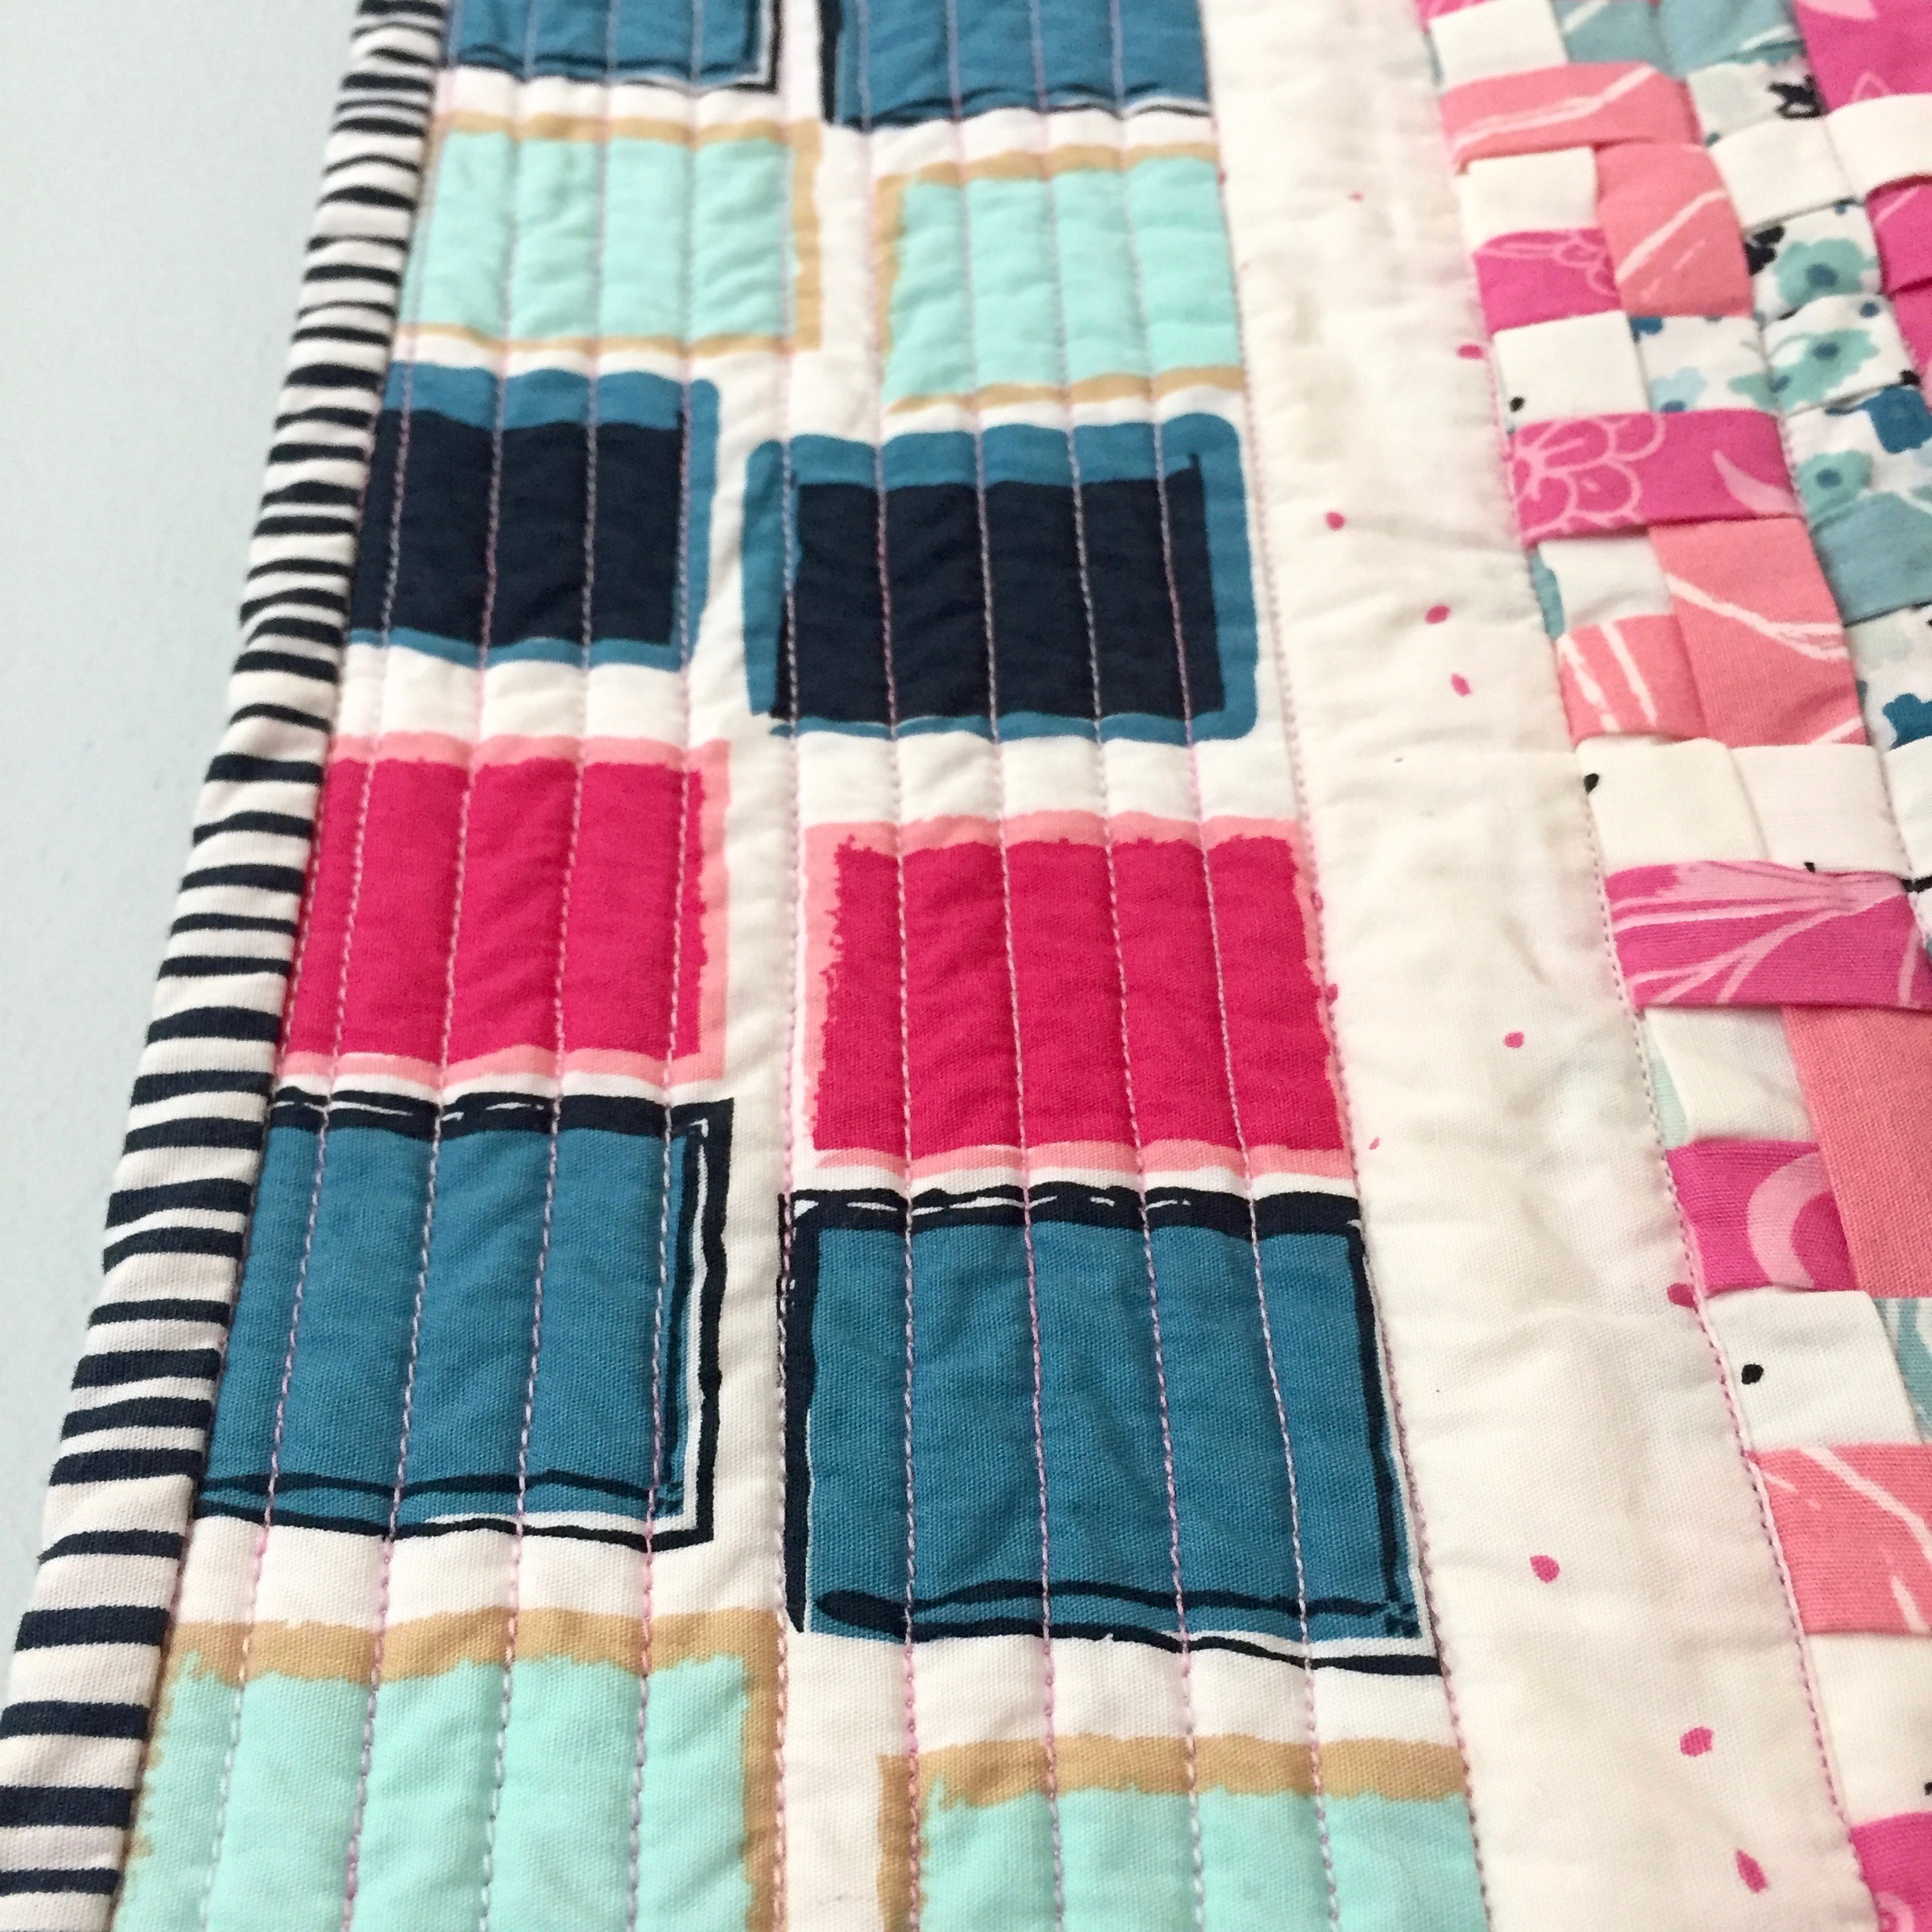 Straight line quilting with Superior Threads King Tut variegated thread.